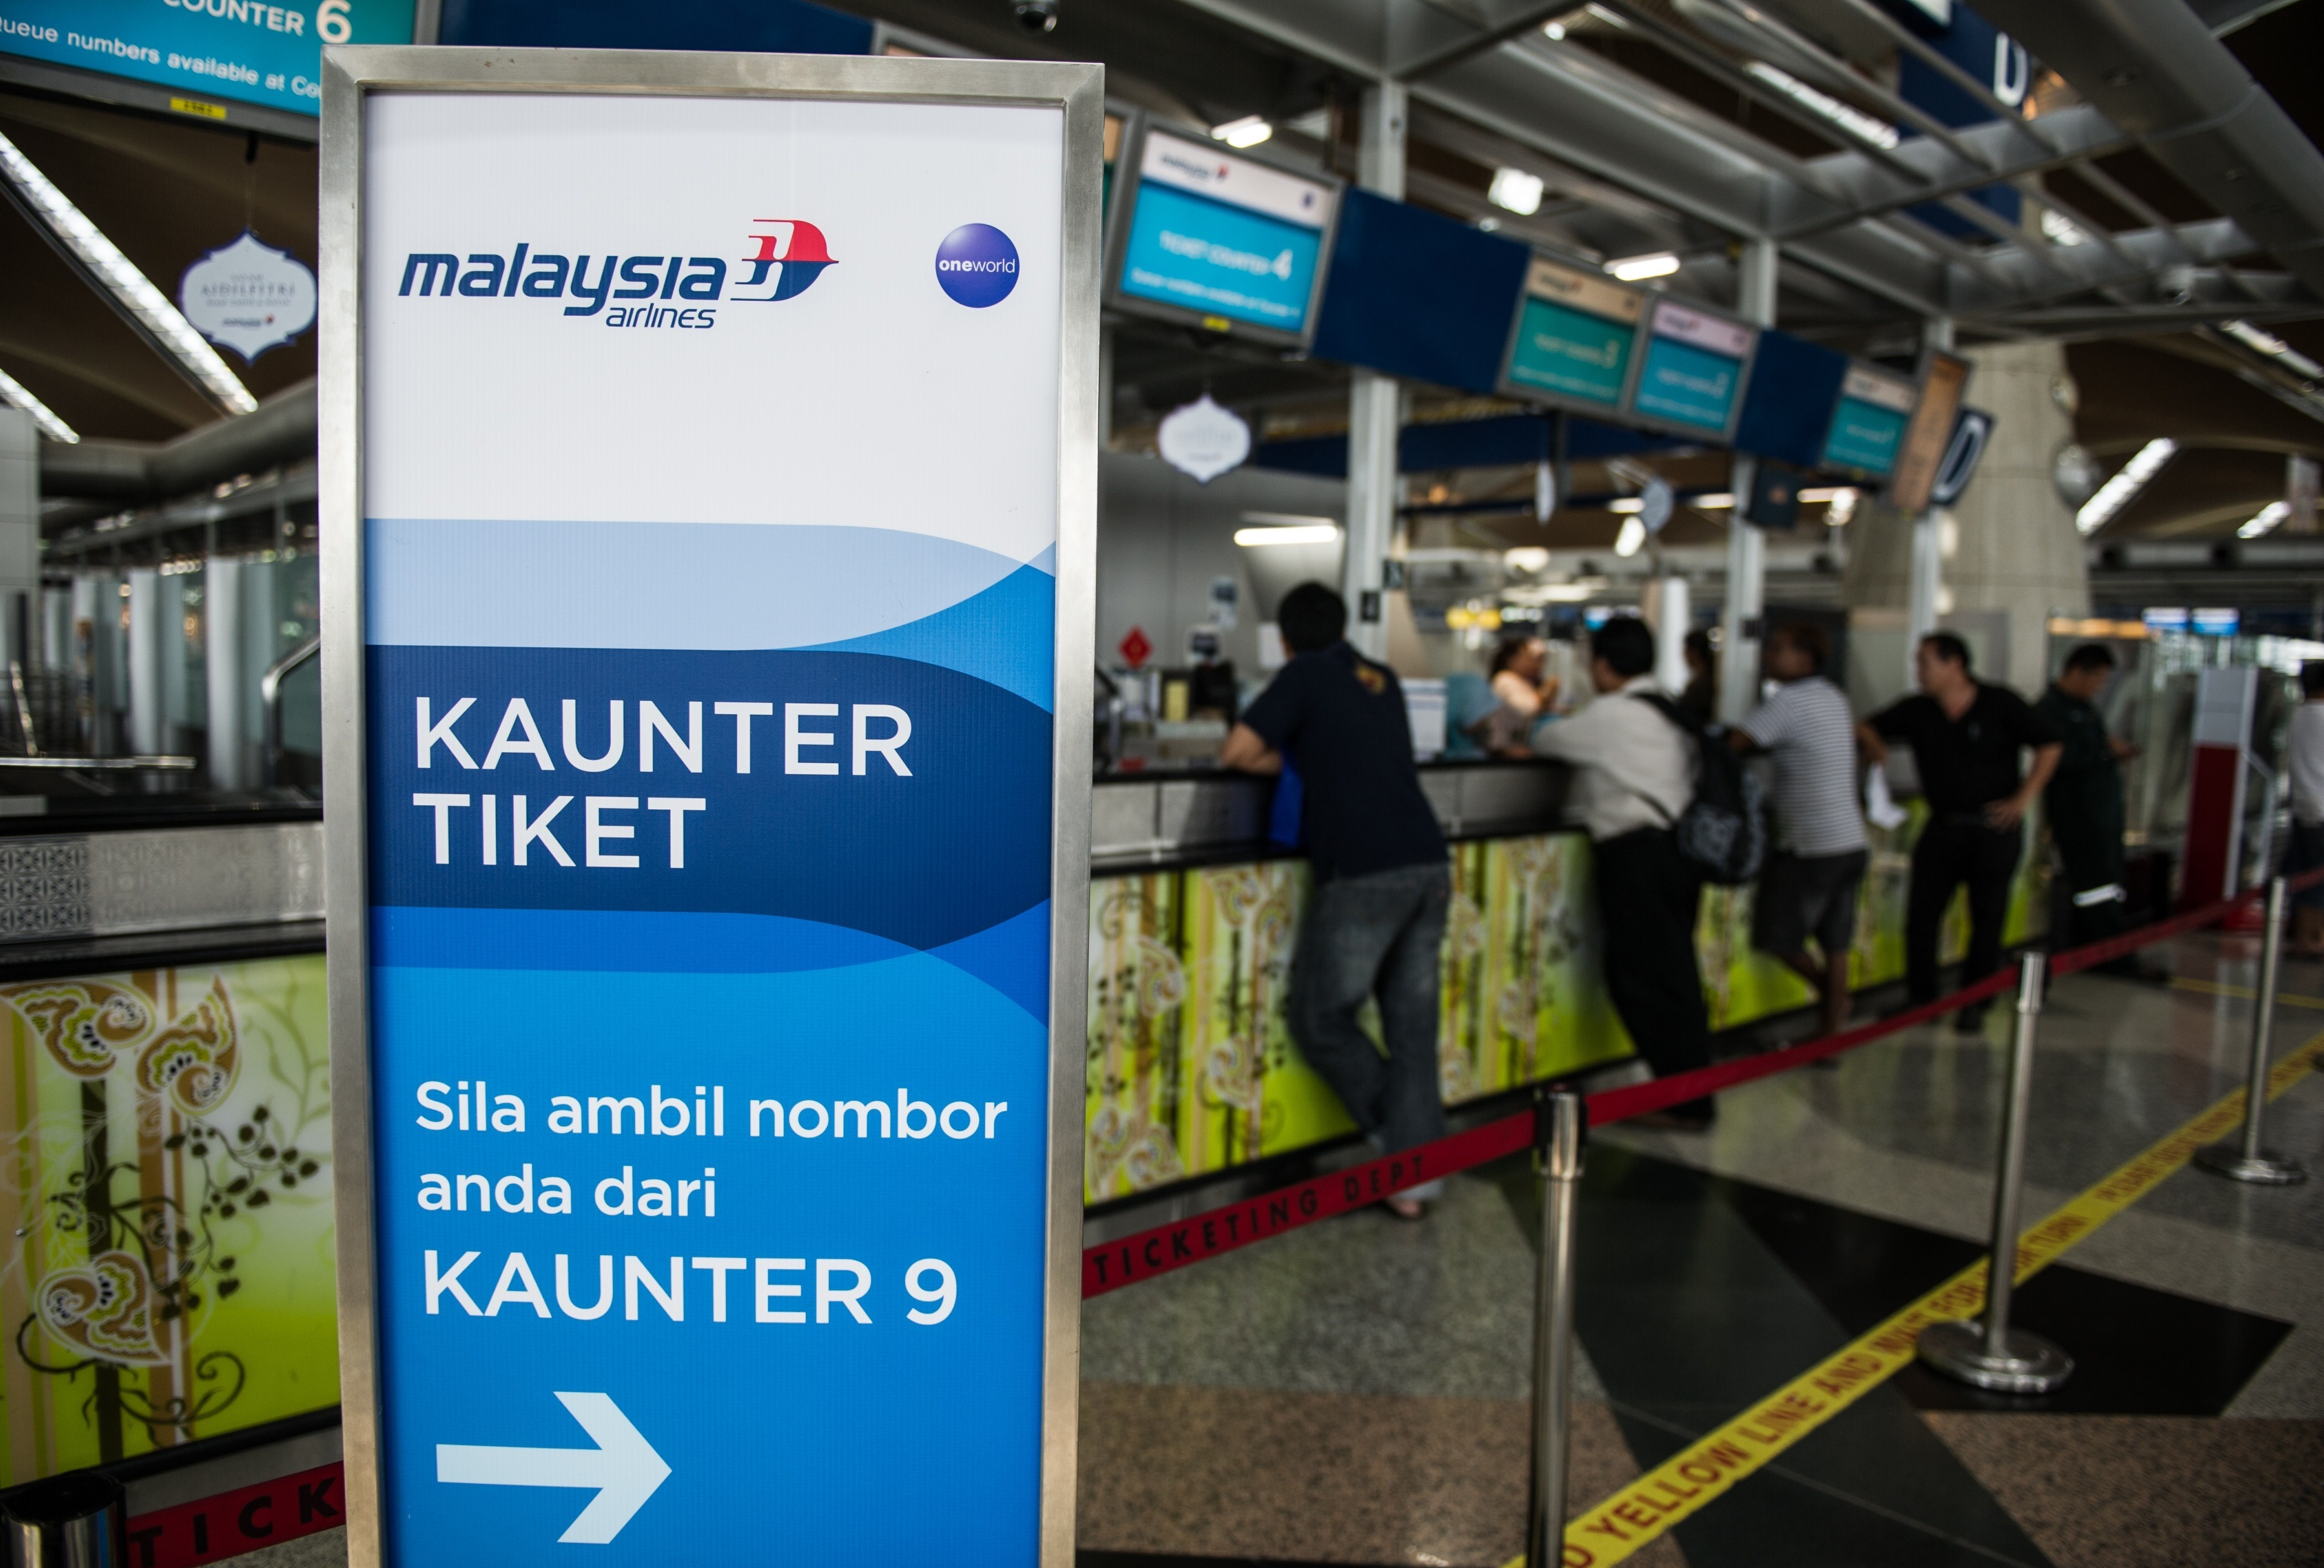 Passengers queue at Malaysia Airlines ticket counters at Kuala Lumpur International Airport in Sepang on July 21, 2014.